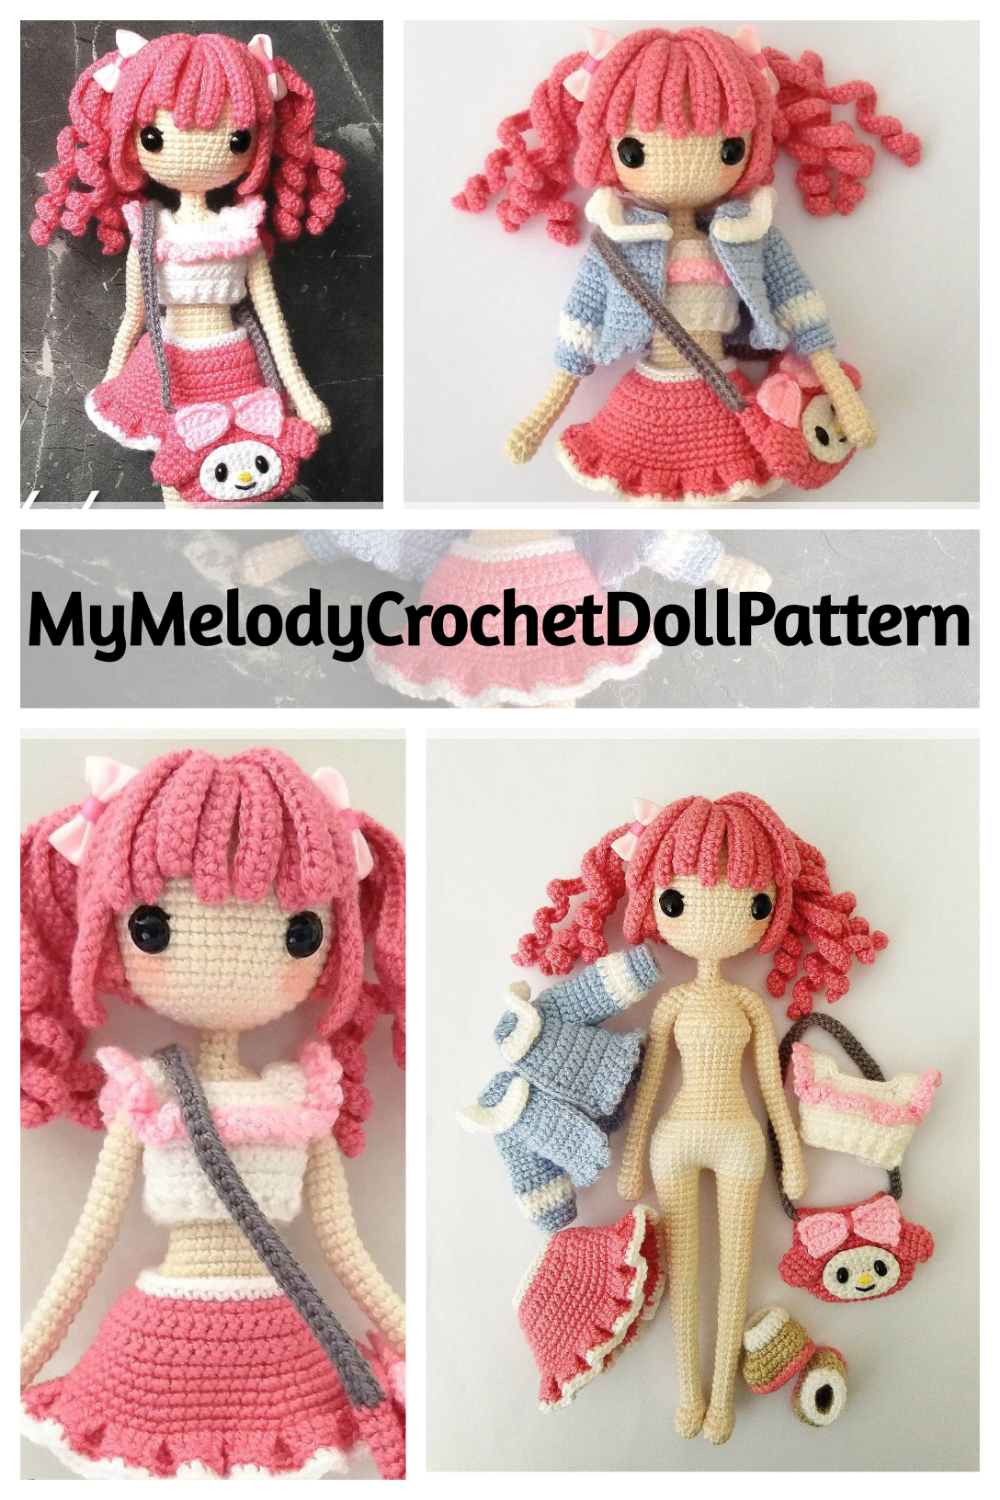 My Melody Crochet Doll Pattern - Stitch.Live #crochetdolls